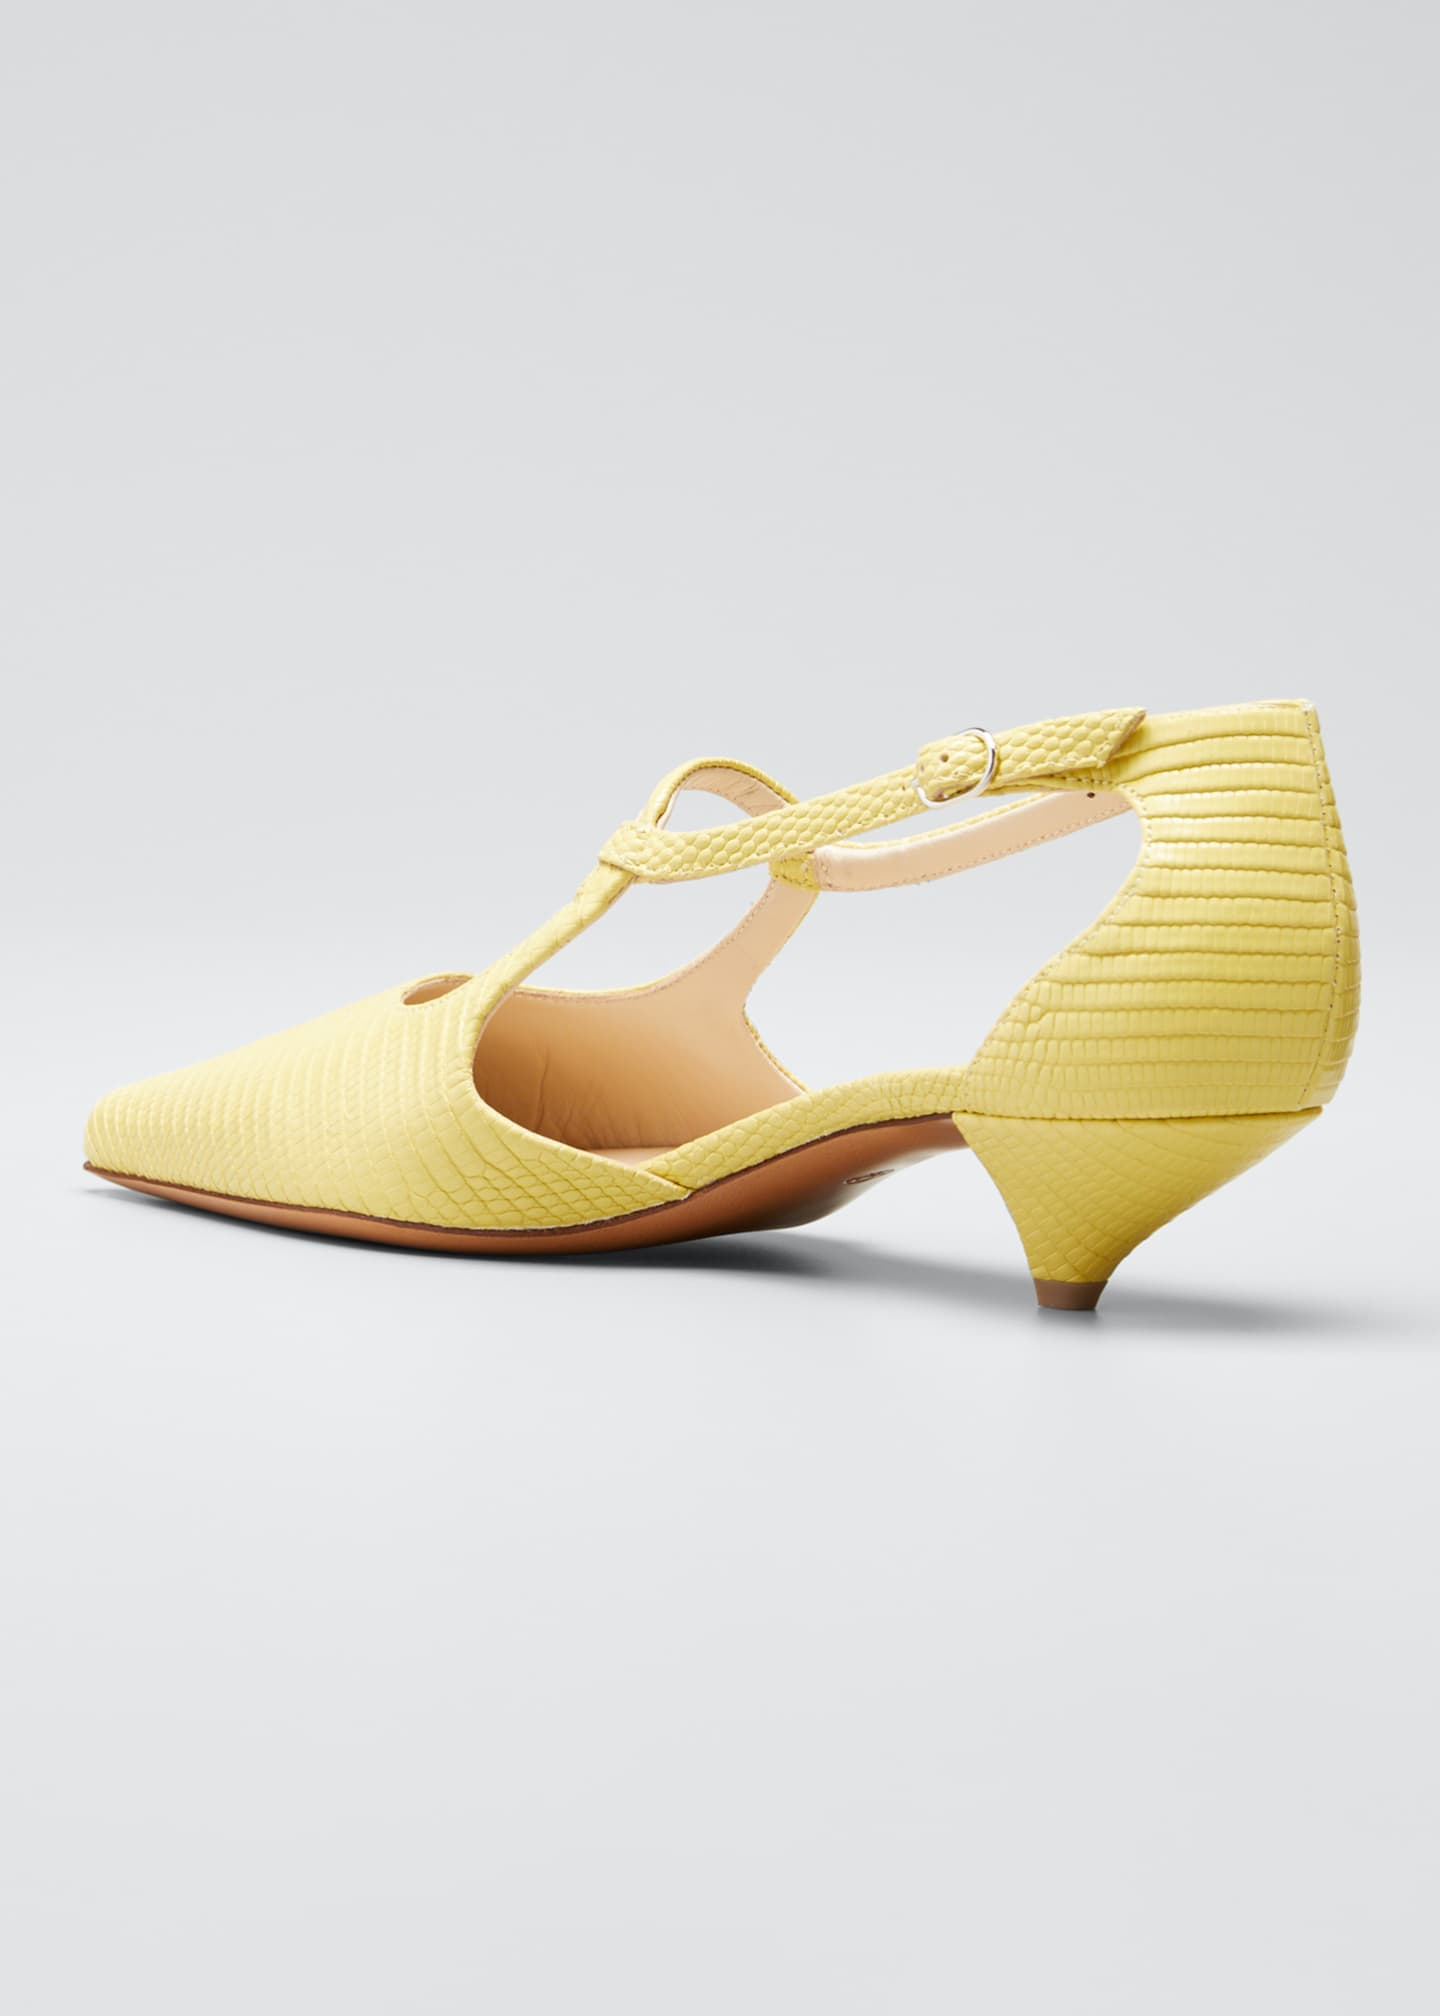 Image 4 of 5: Bourgeoisie Salome Lizard Pumps